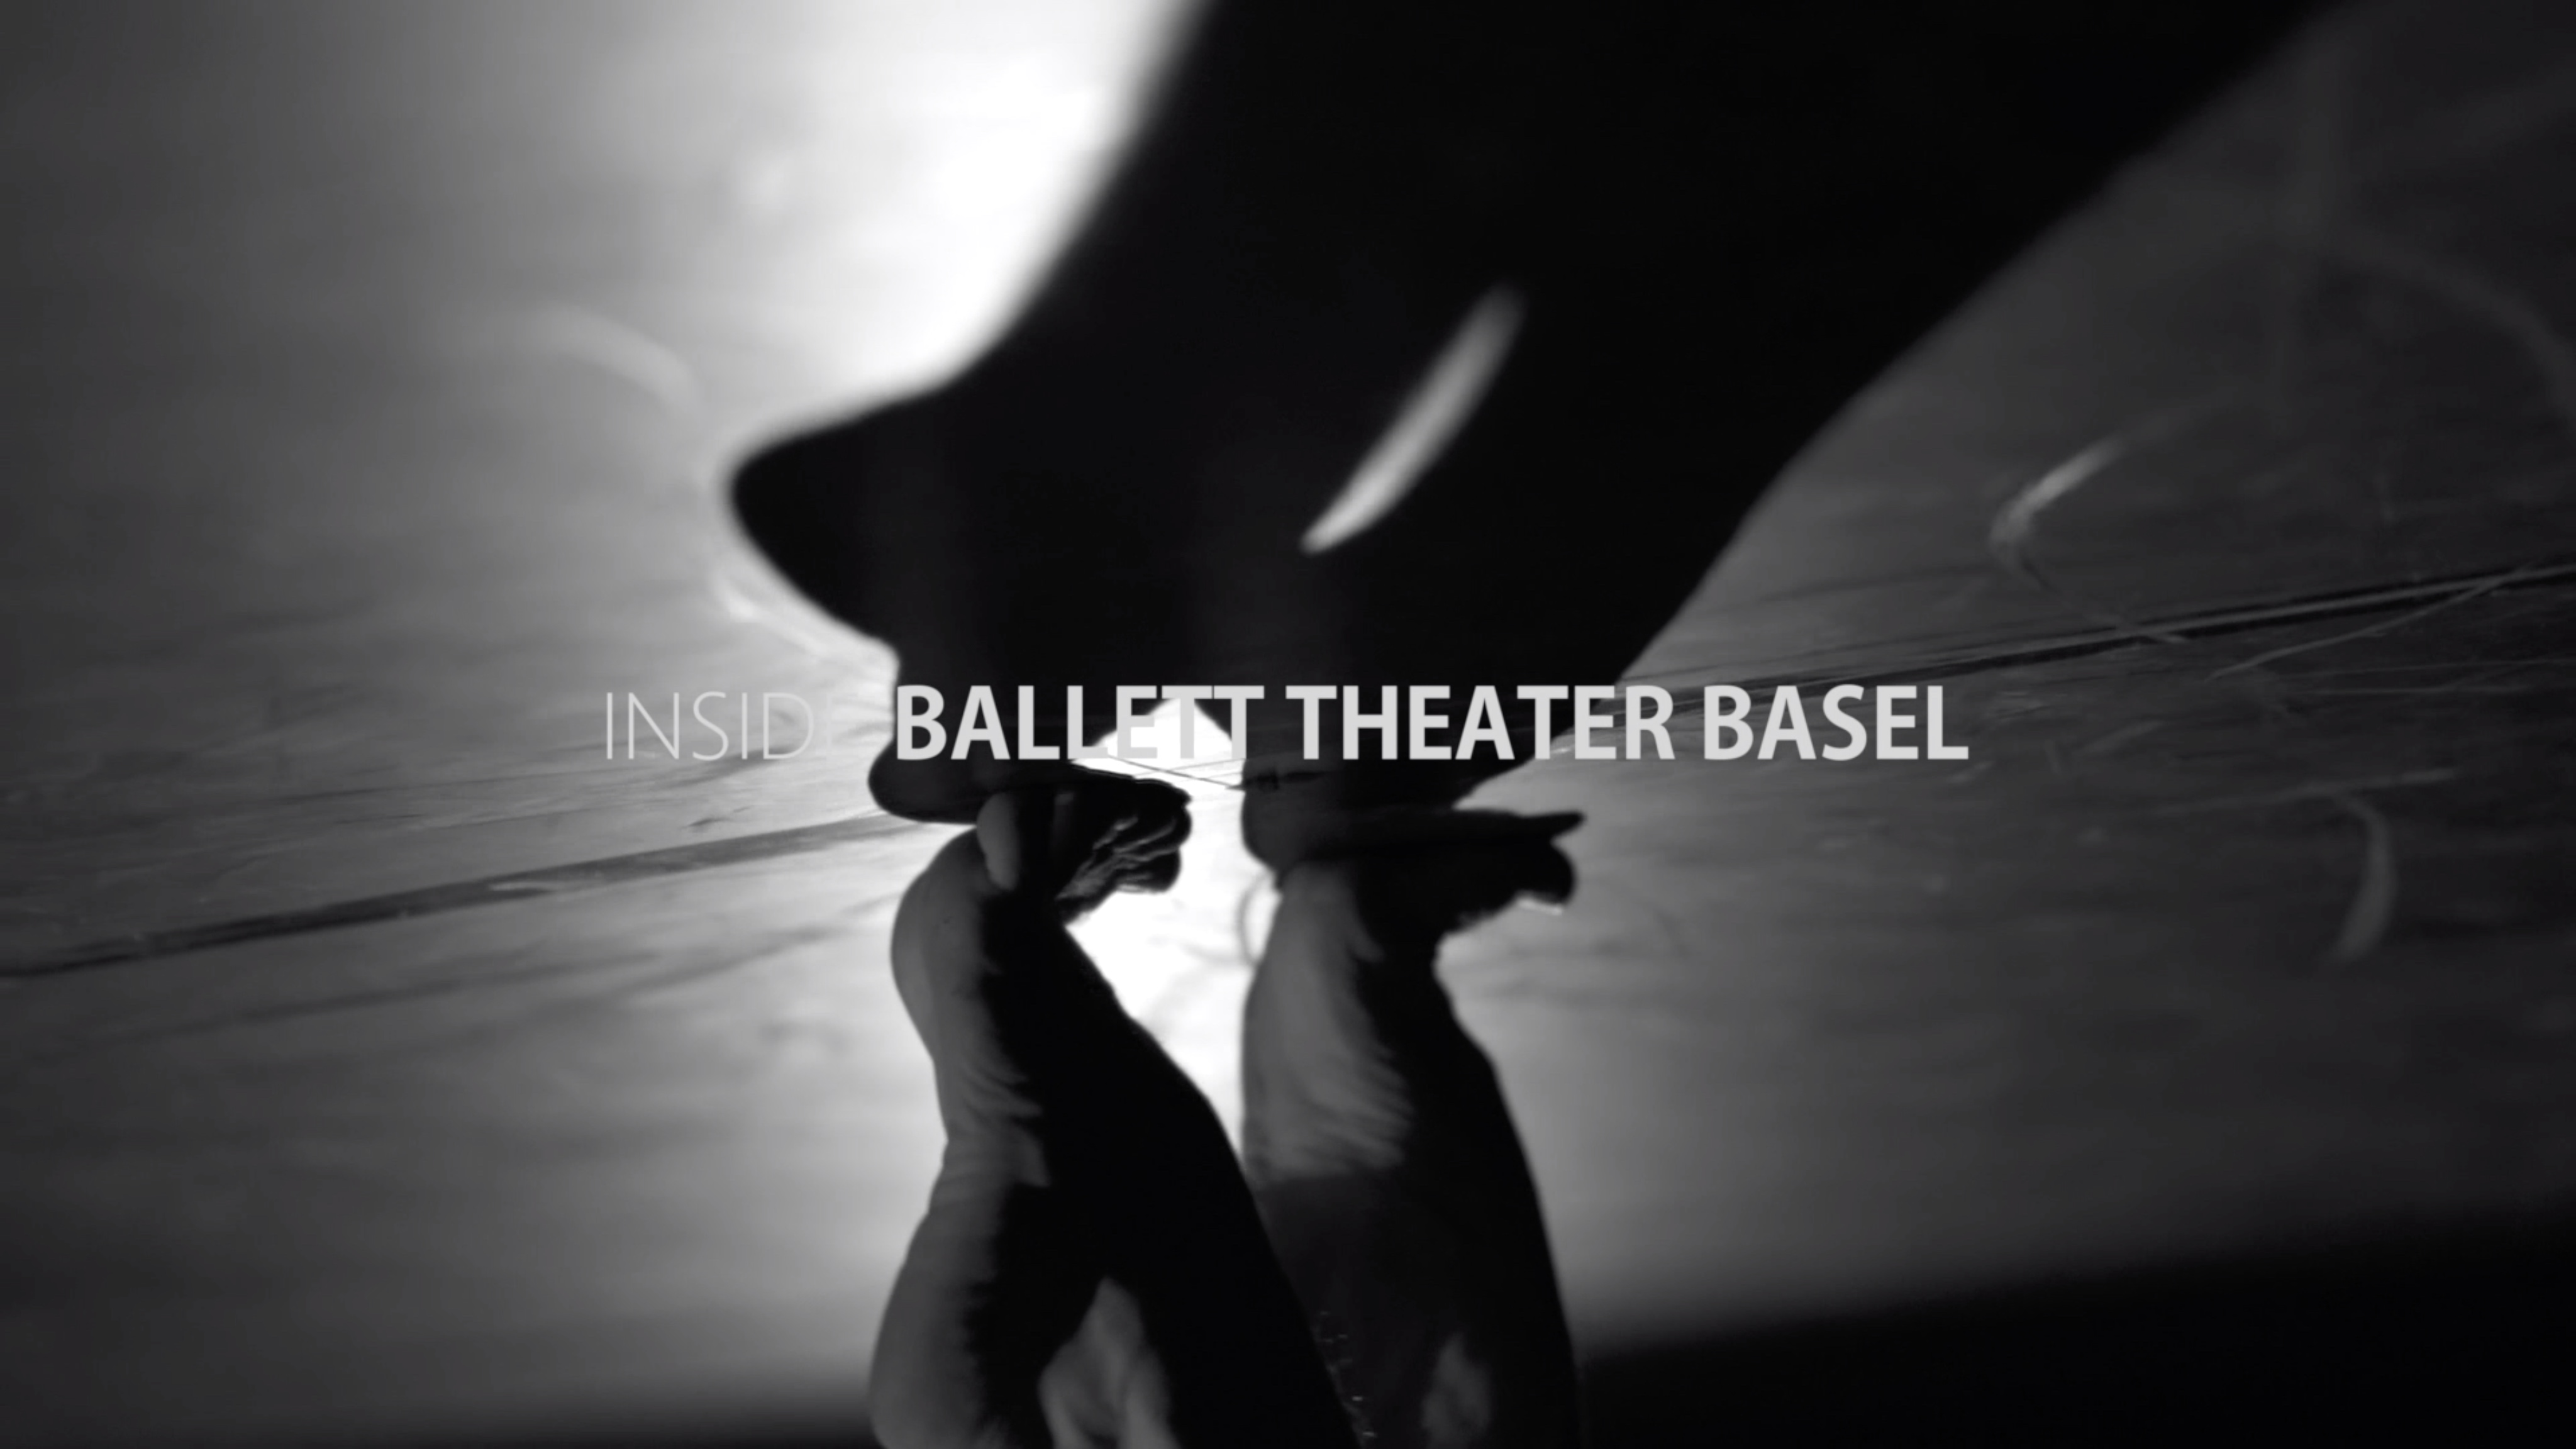 Happy 2019 from Ballett Theater Basel